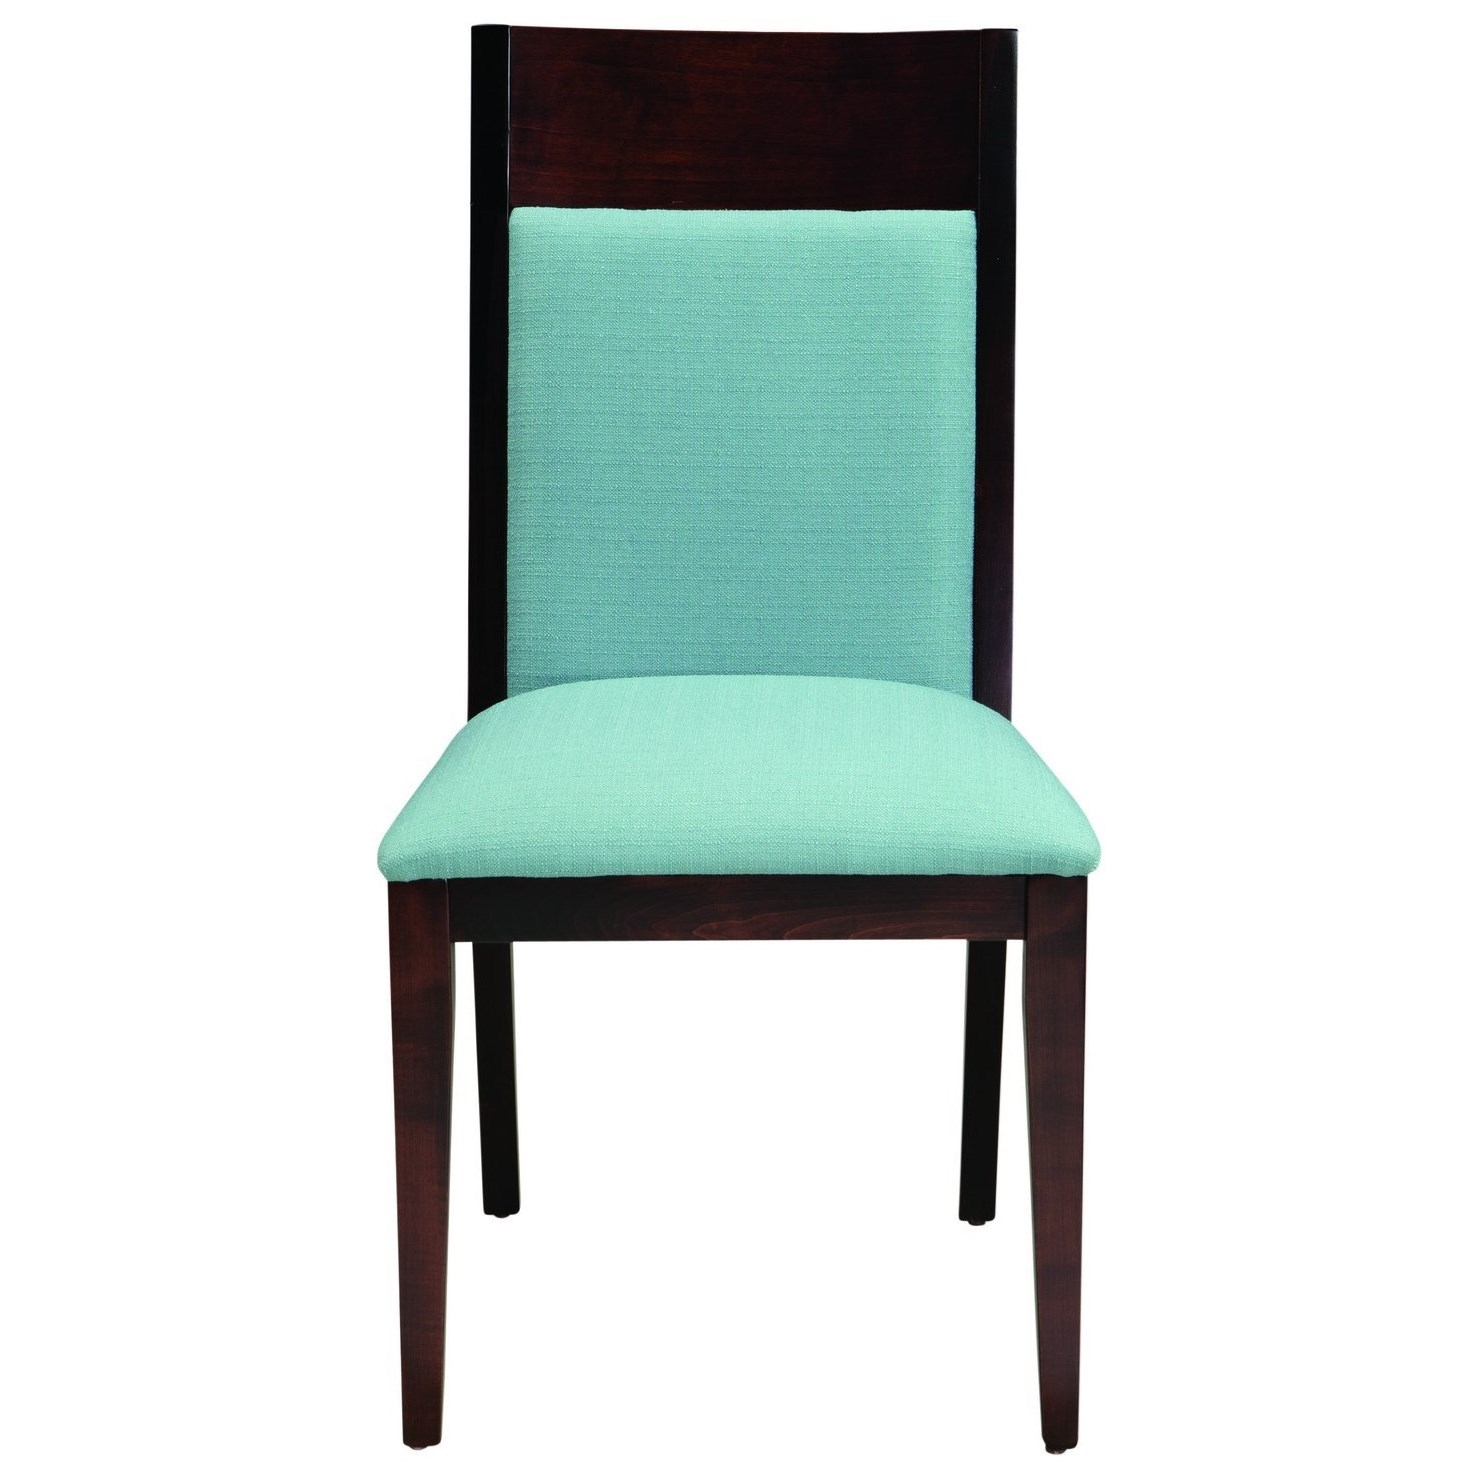 Expressions Soho Side Chair by Palettes by Winesburg at Dinette Depot